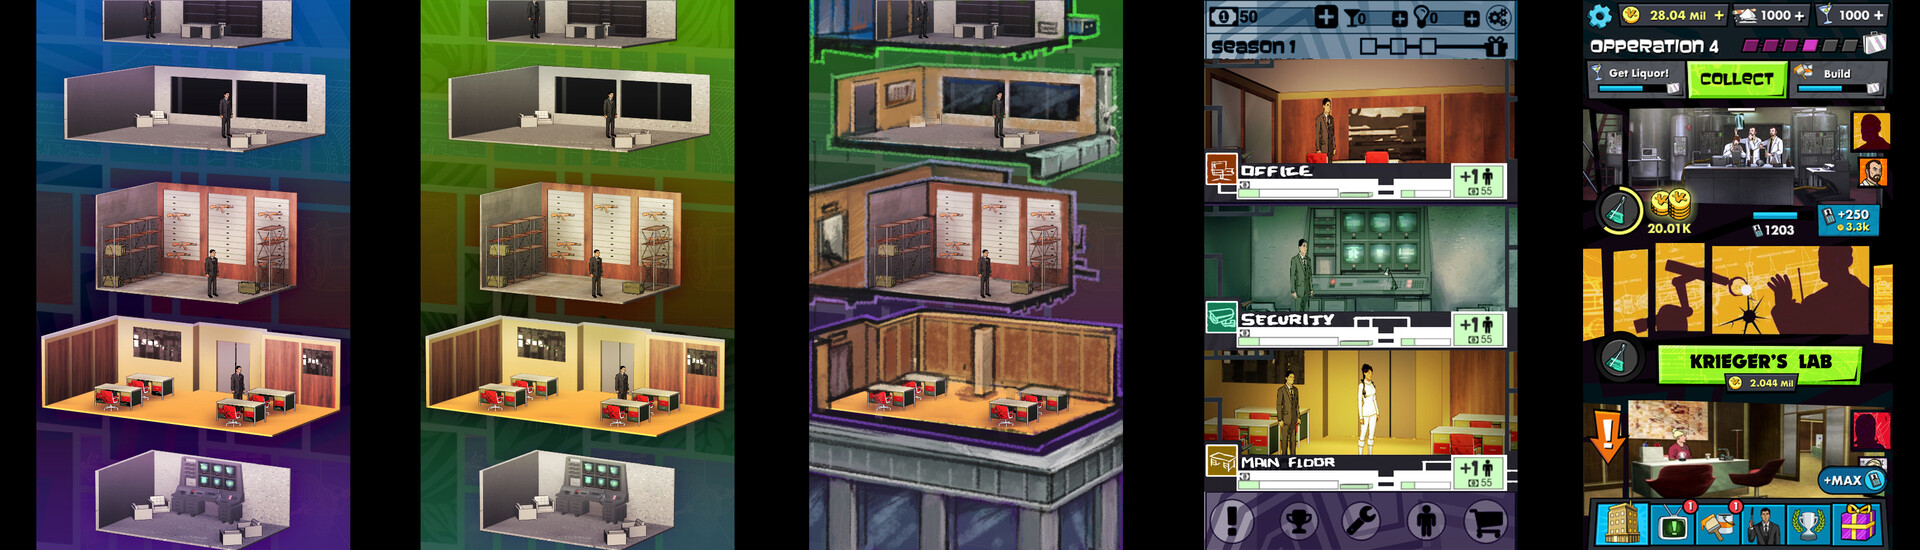 These are some very early mockups of Portrait versions of the game.  3D room elements were by Marc Apablaza.  UI elements by Kat Dolan.  Kludgey Photoshop nonsense by me.